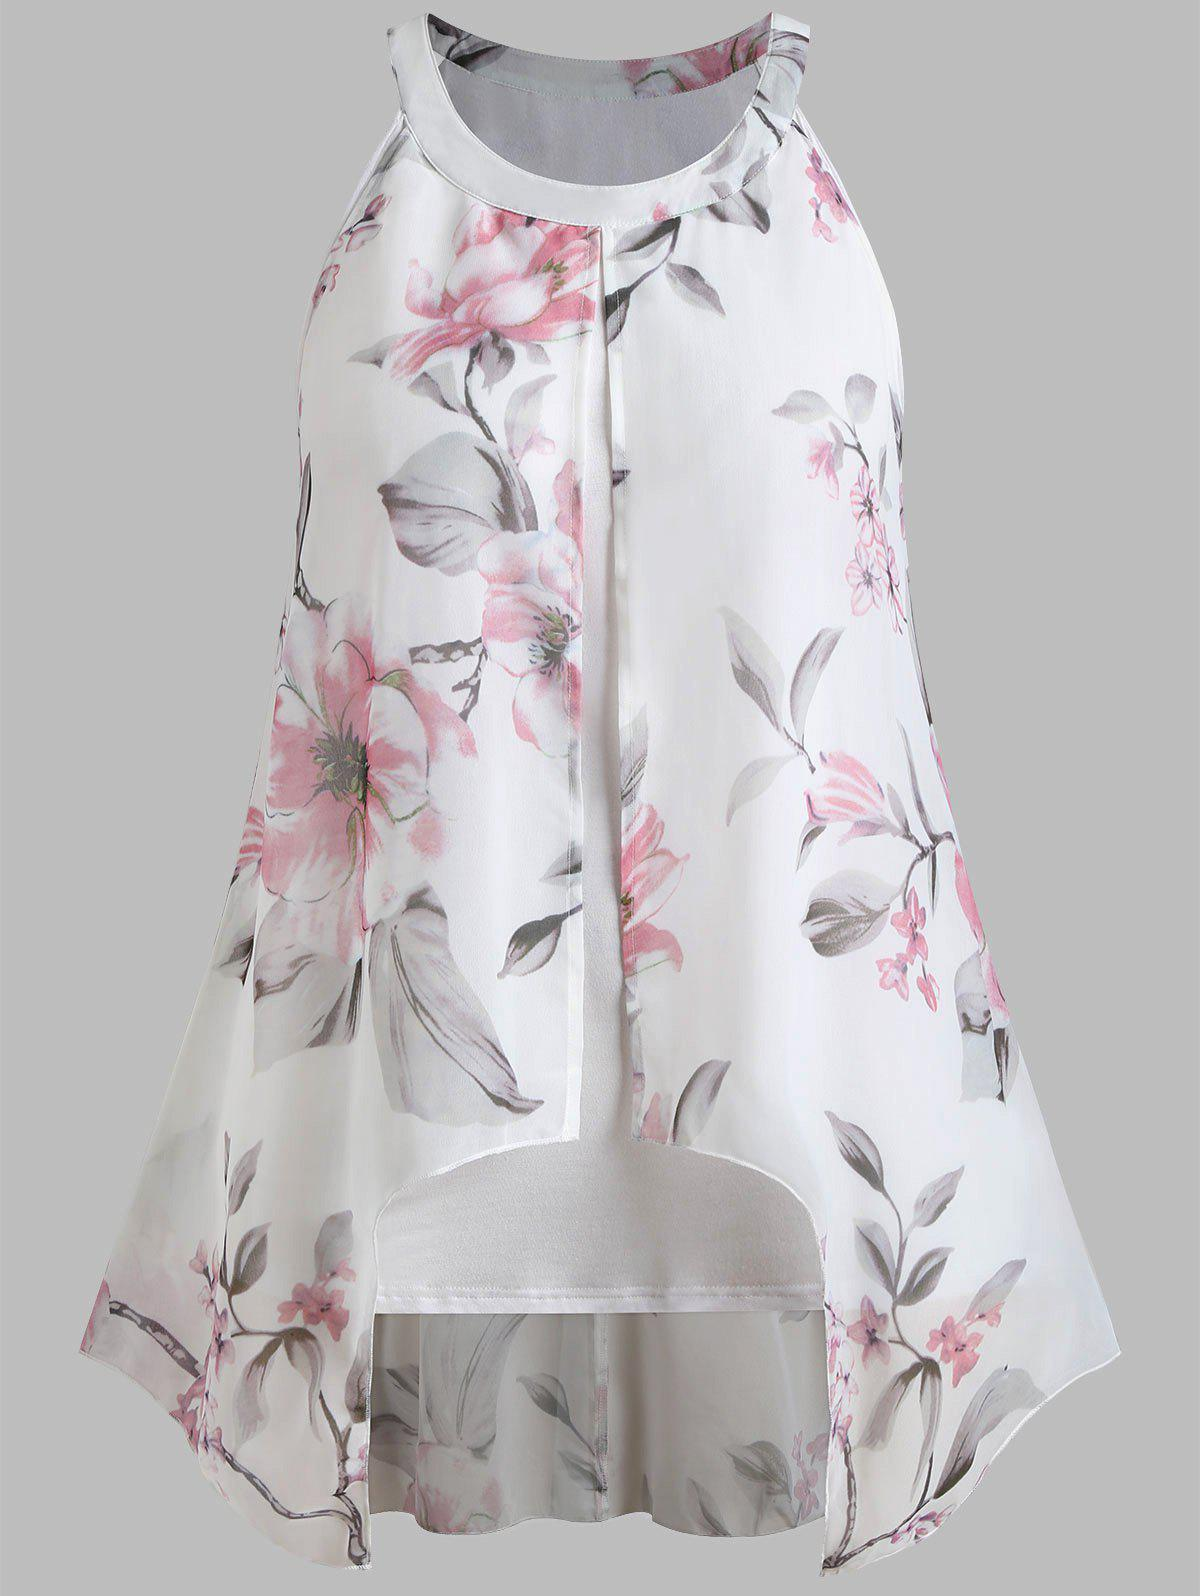 42 Off 2019 Floral Print Plus Size Sleeveless Chiffon Blouse